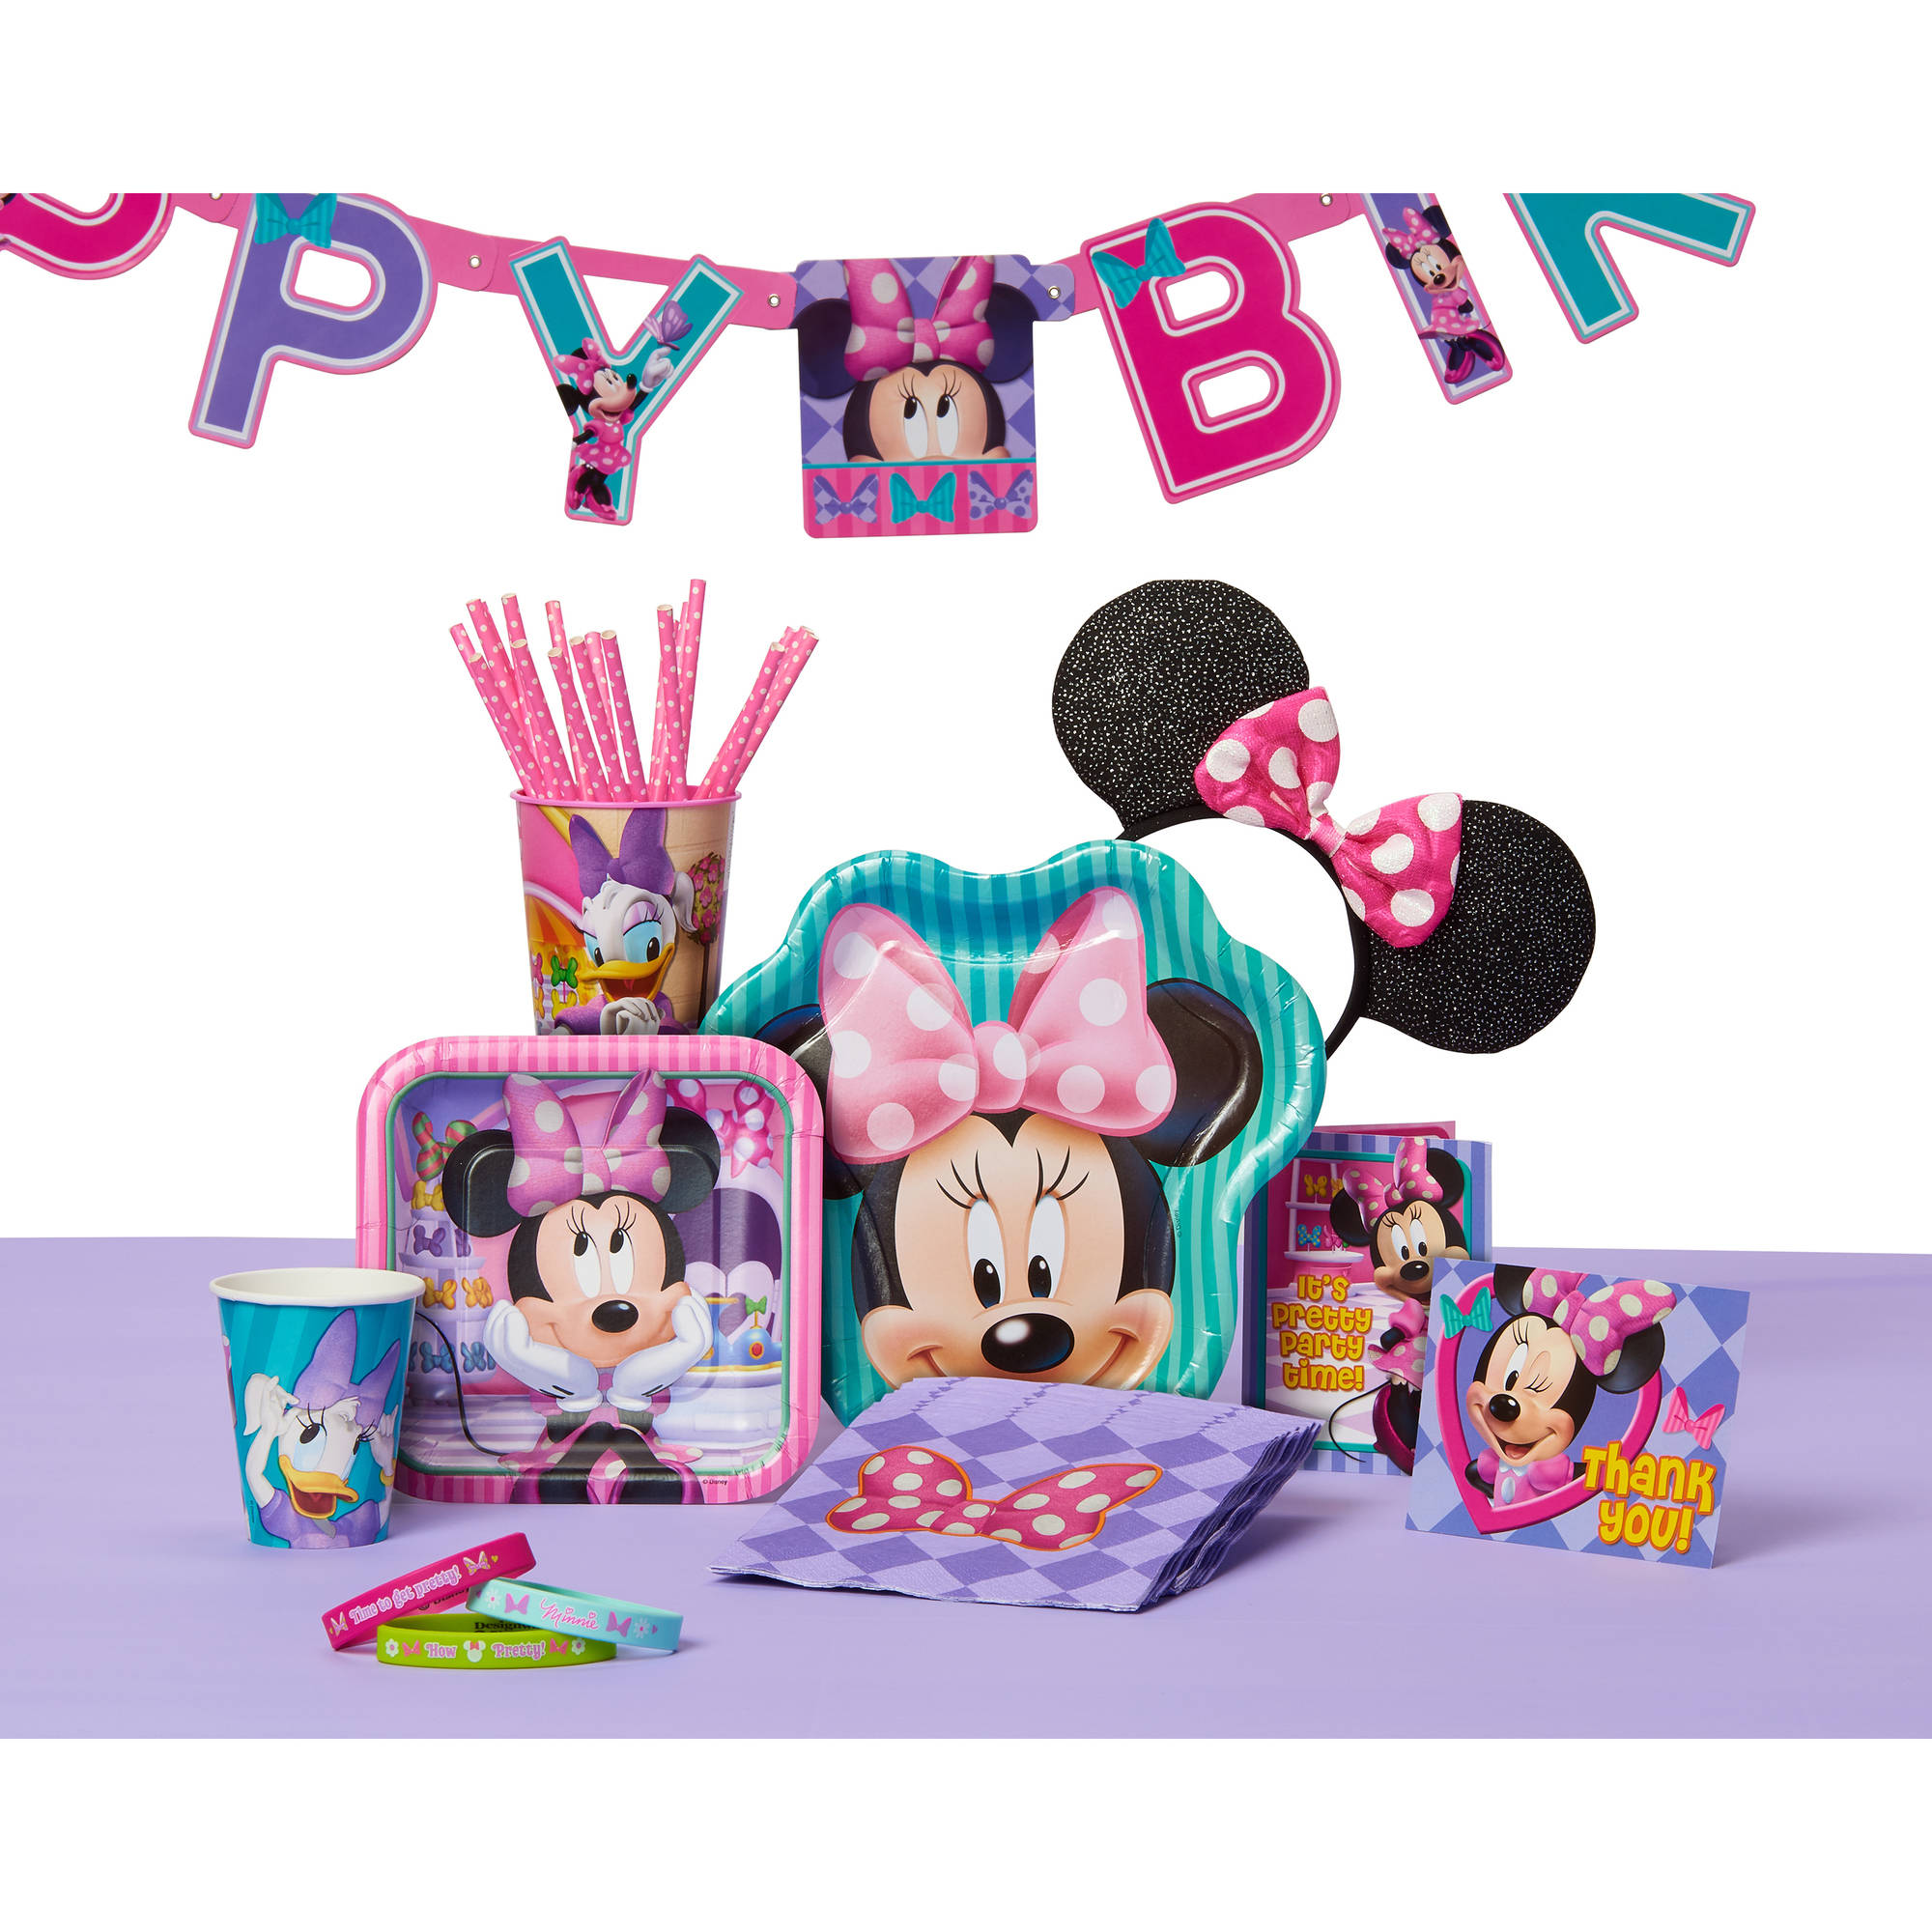 Minnie Mouse Bow Tique Party Headbands 8ct Walmartcom